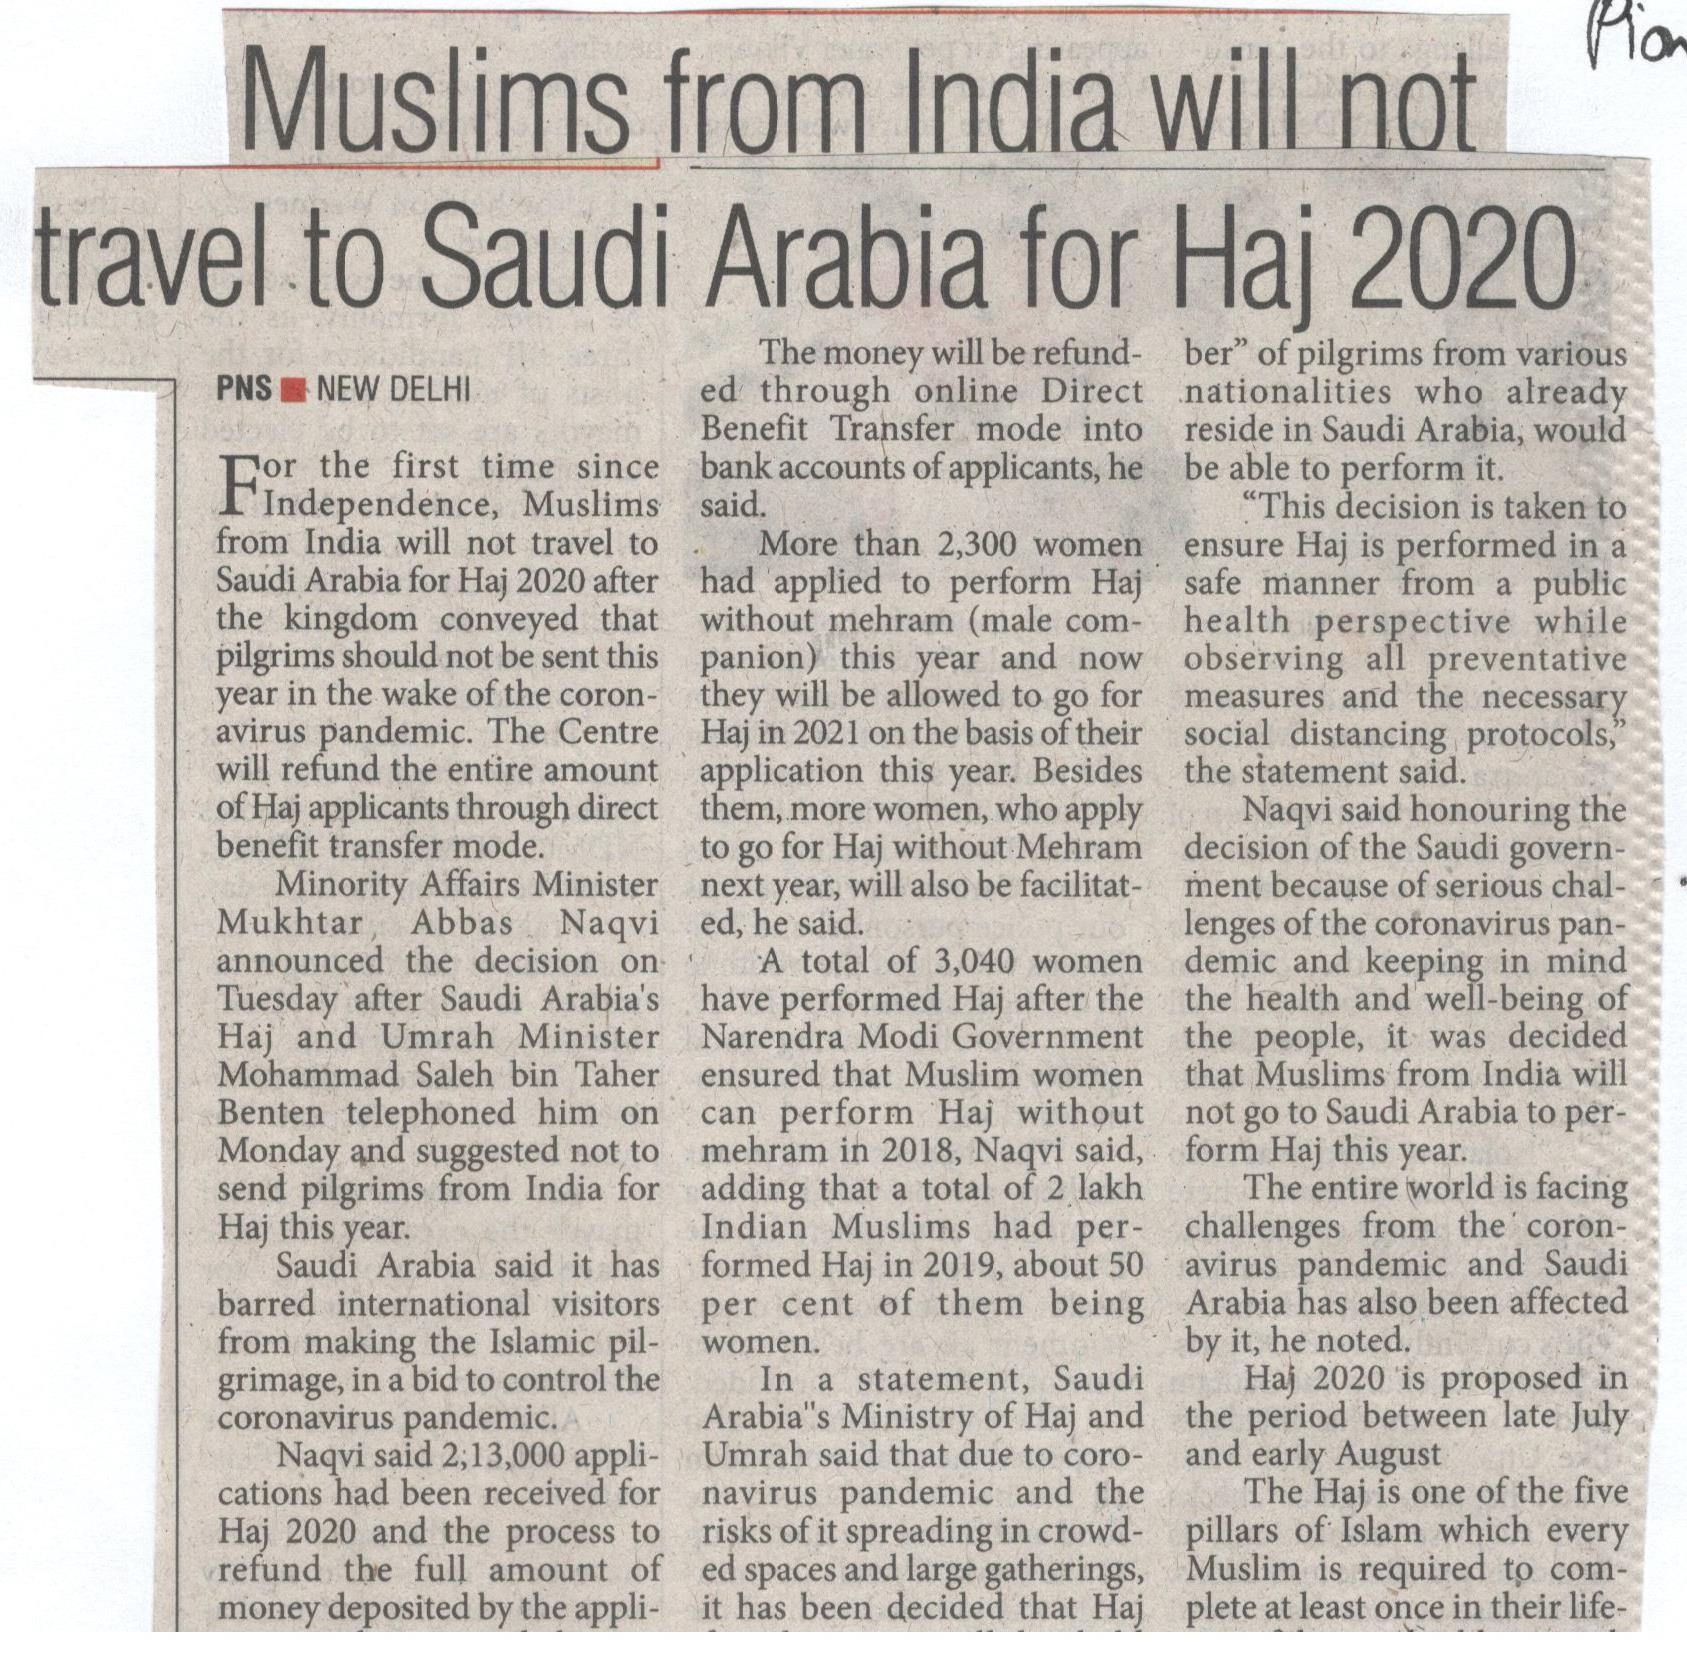 The Hajj Pilgrimage Is Canceled in 2020